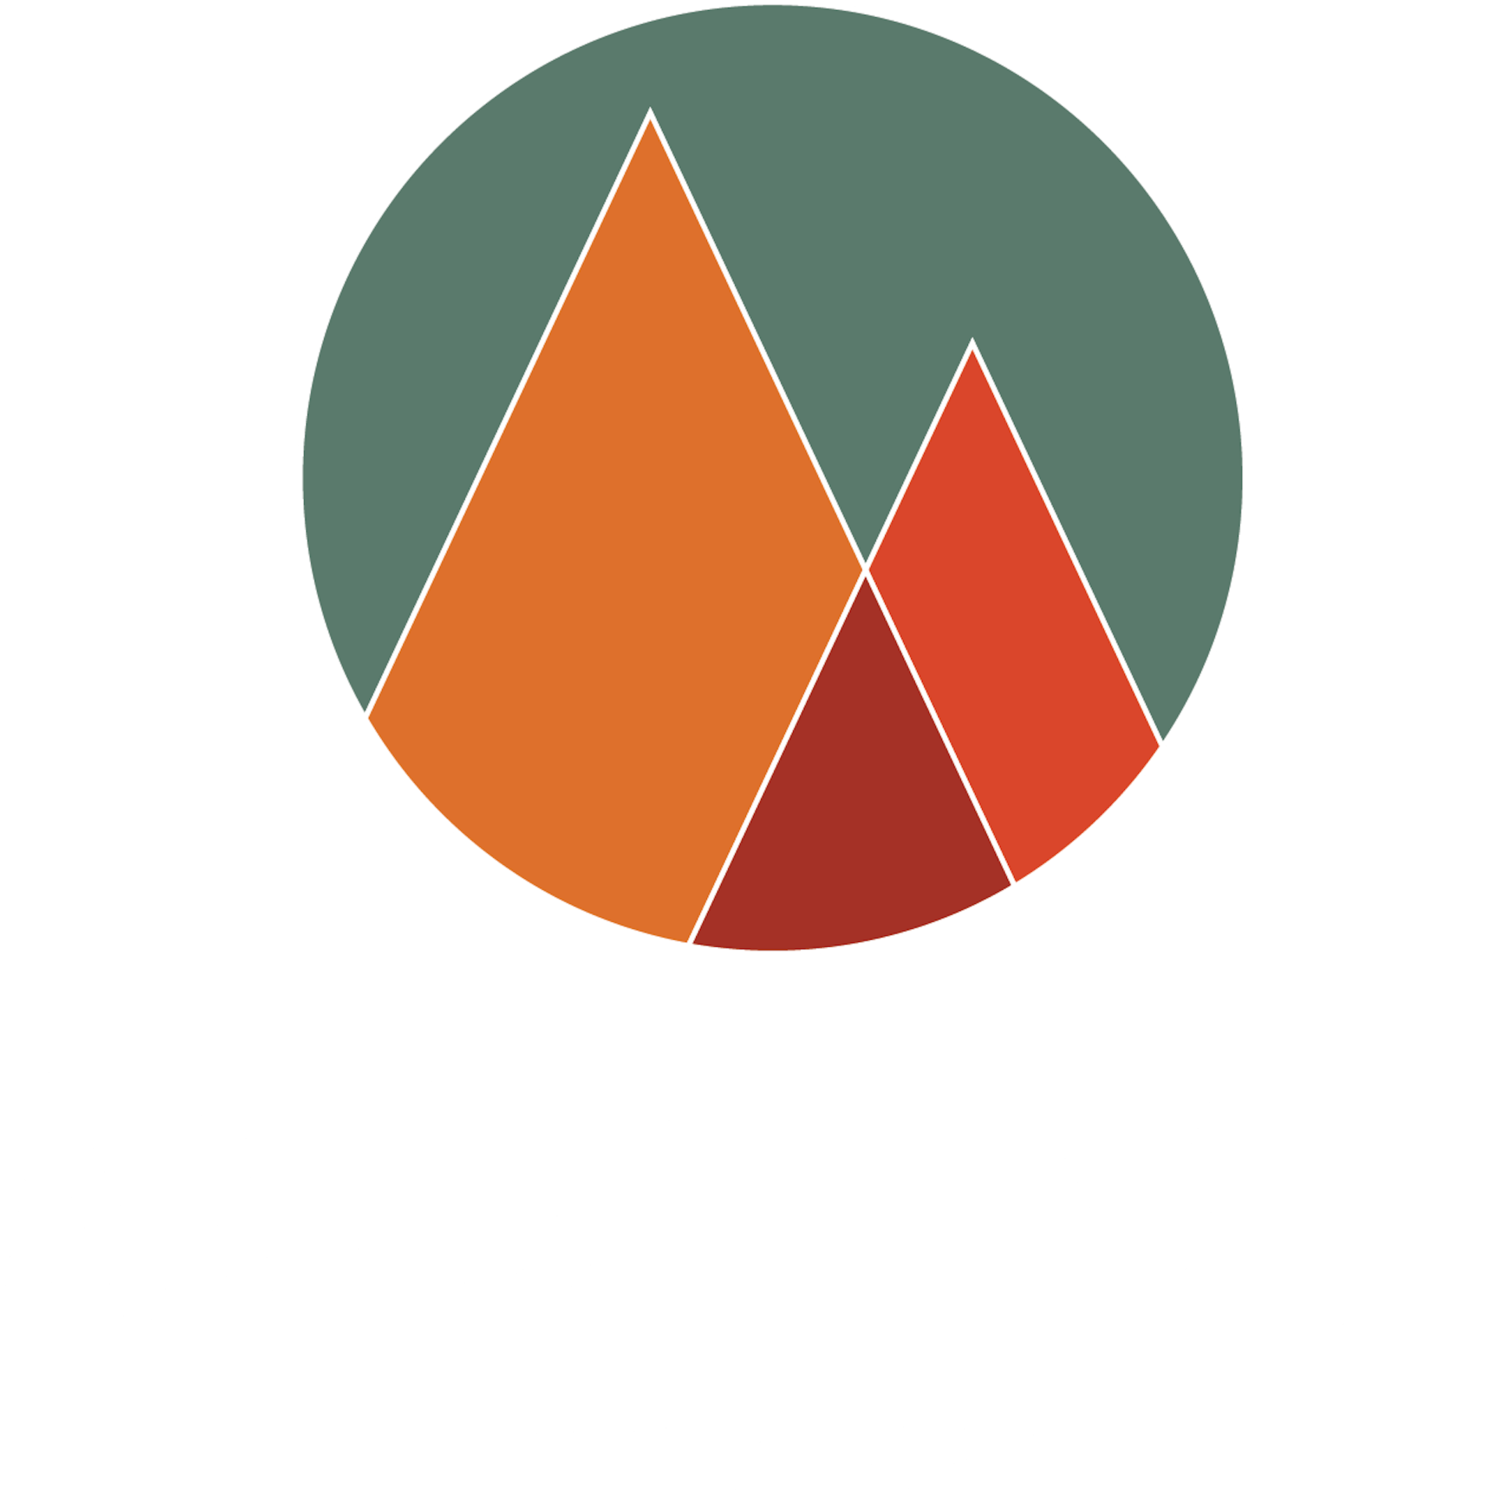 Motive Yoga Co.